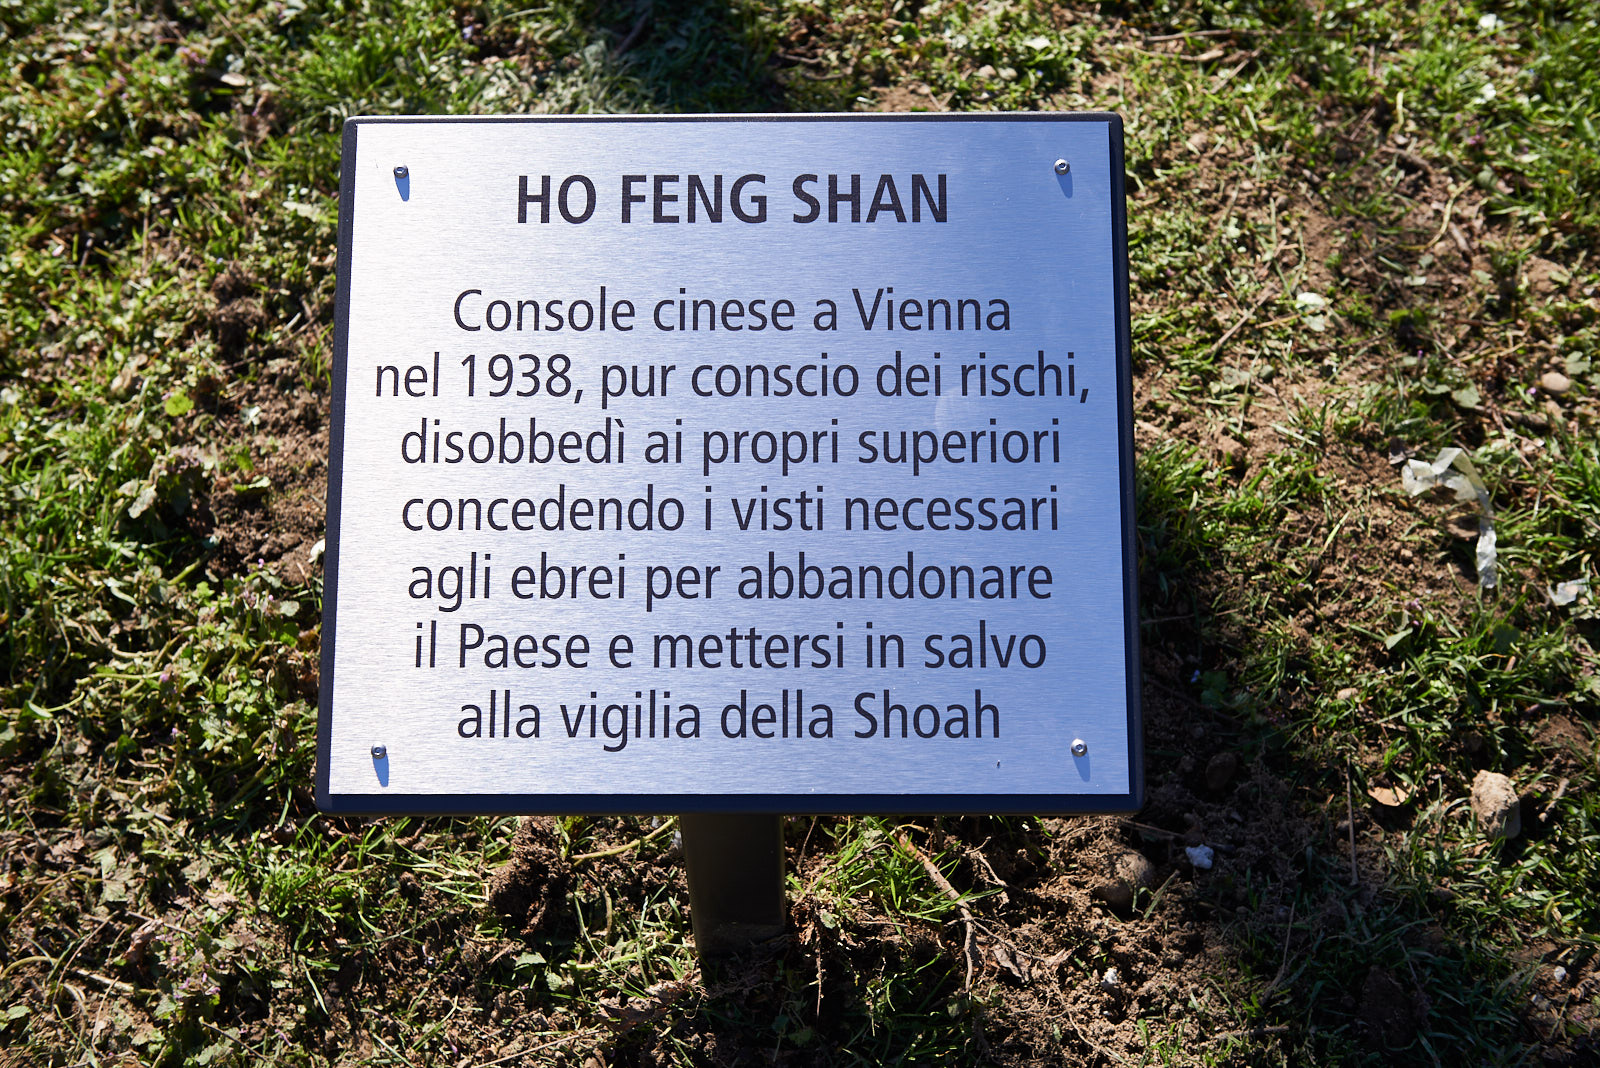 Plaque for Ho Feng Shan